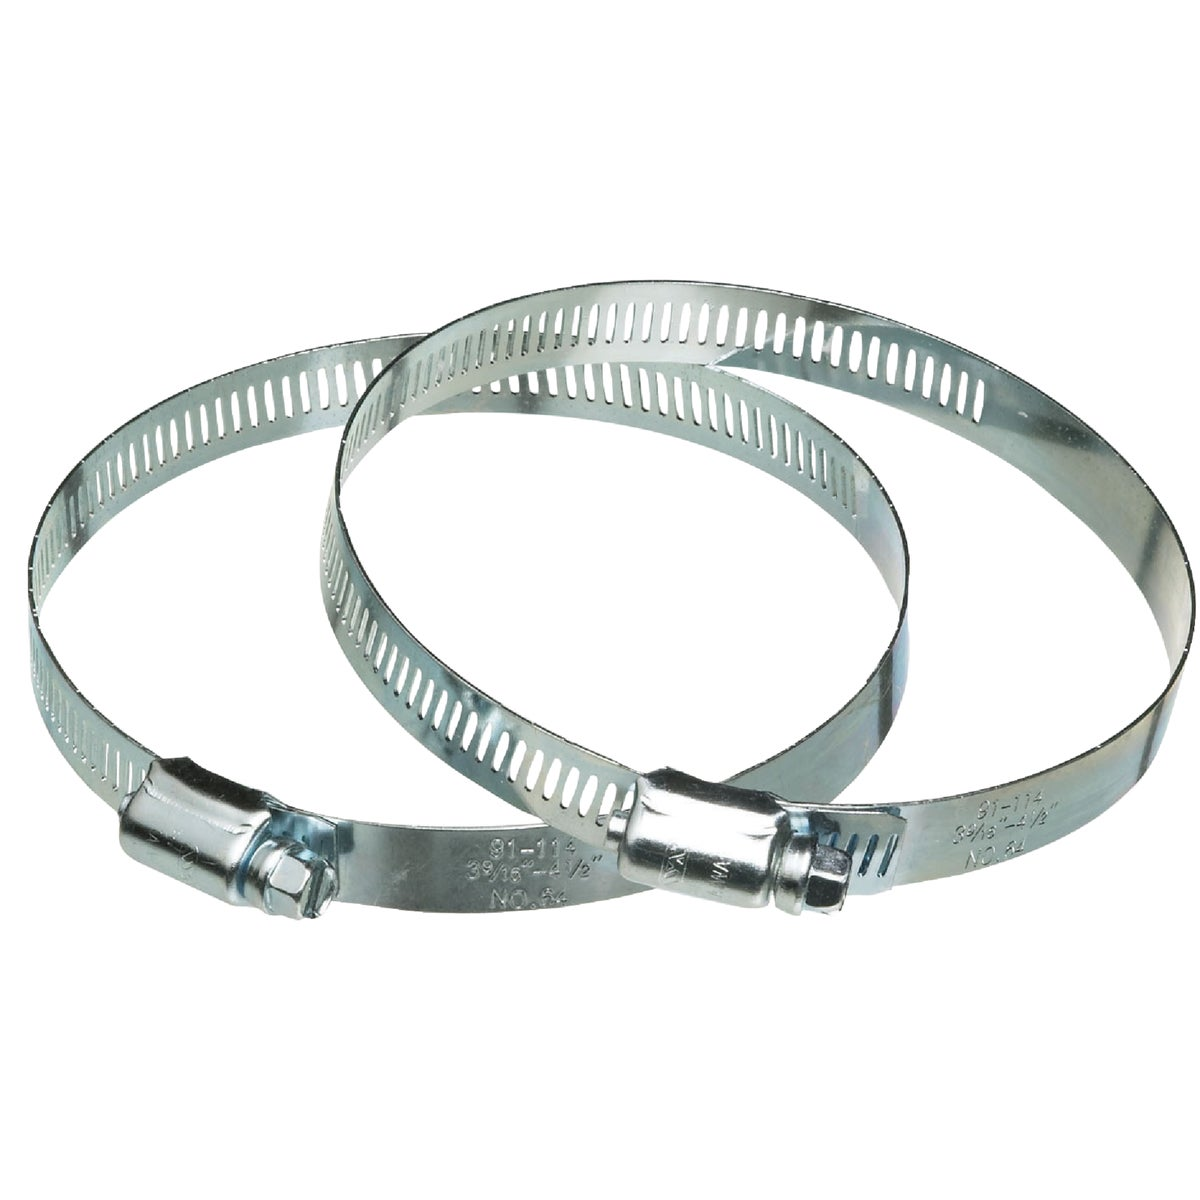 "3"" METAL FLEX DUCT CLAMP - MC3ZW by Dundas Jafine"